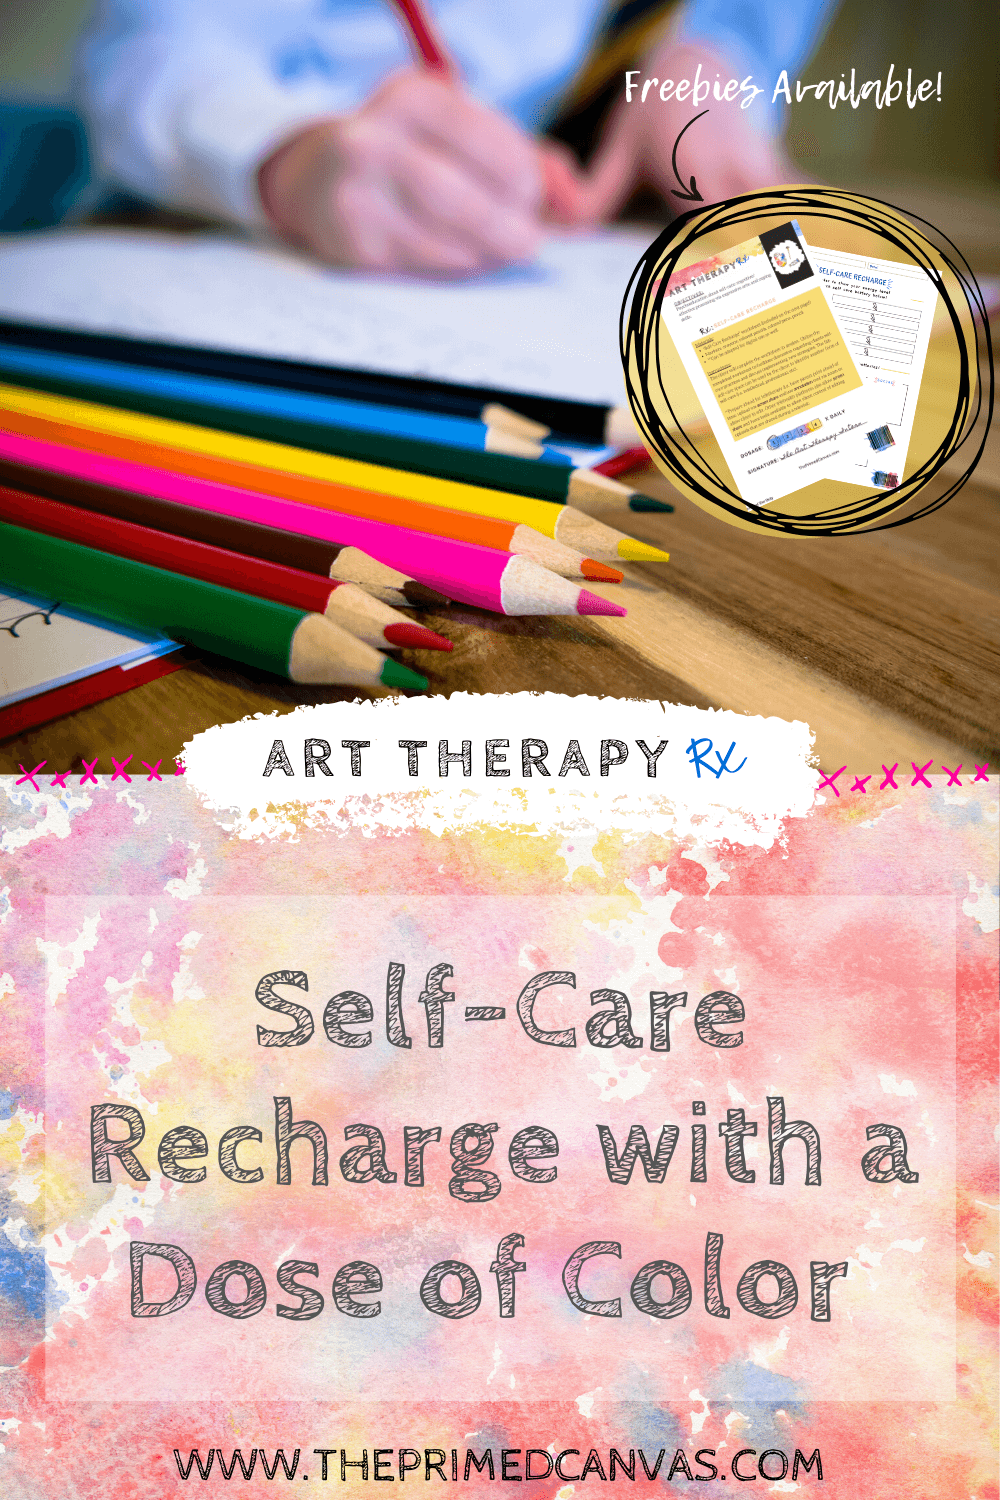 Art Therapy Rx | Self-care Recharge: An art therapy activity to address stress and discuss coping skills for physical, emotional, social, and spiritual wellbeing. [Disponible en Español]